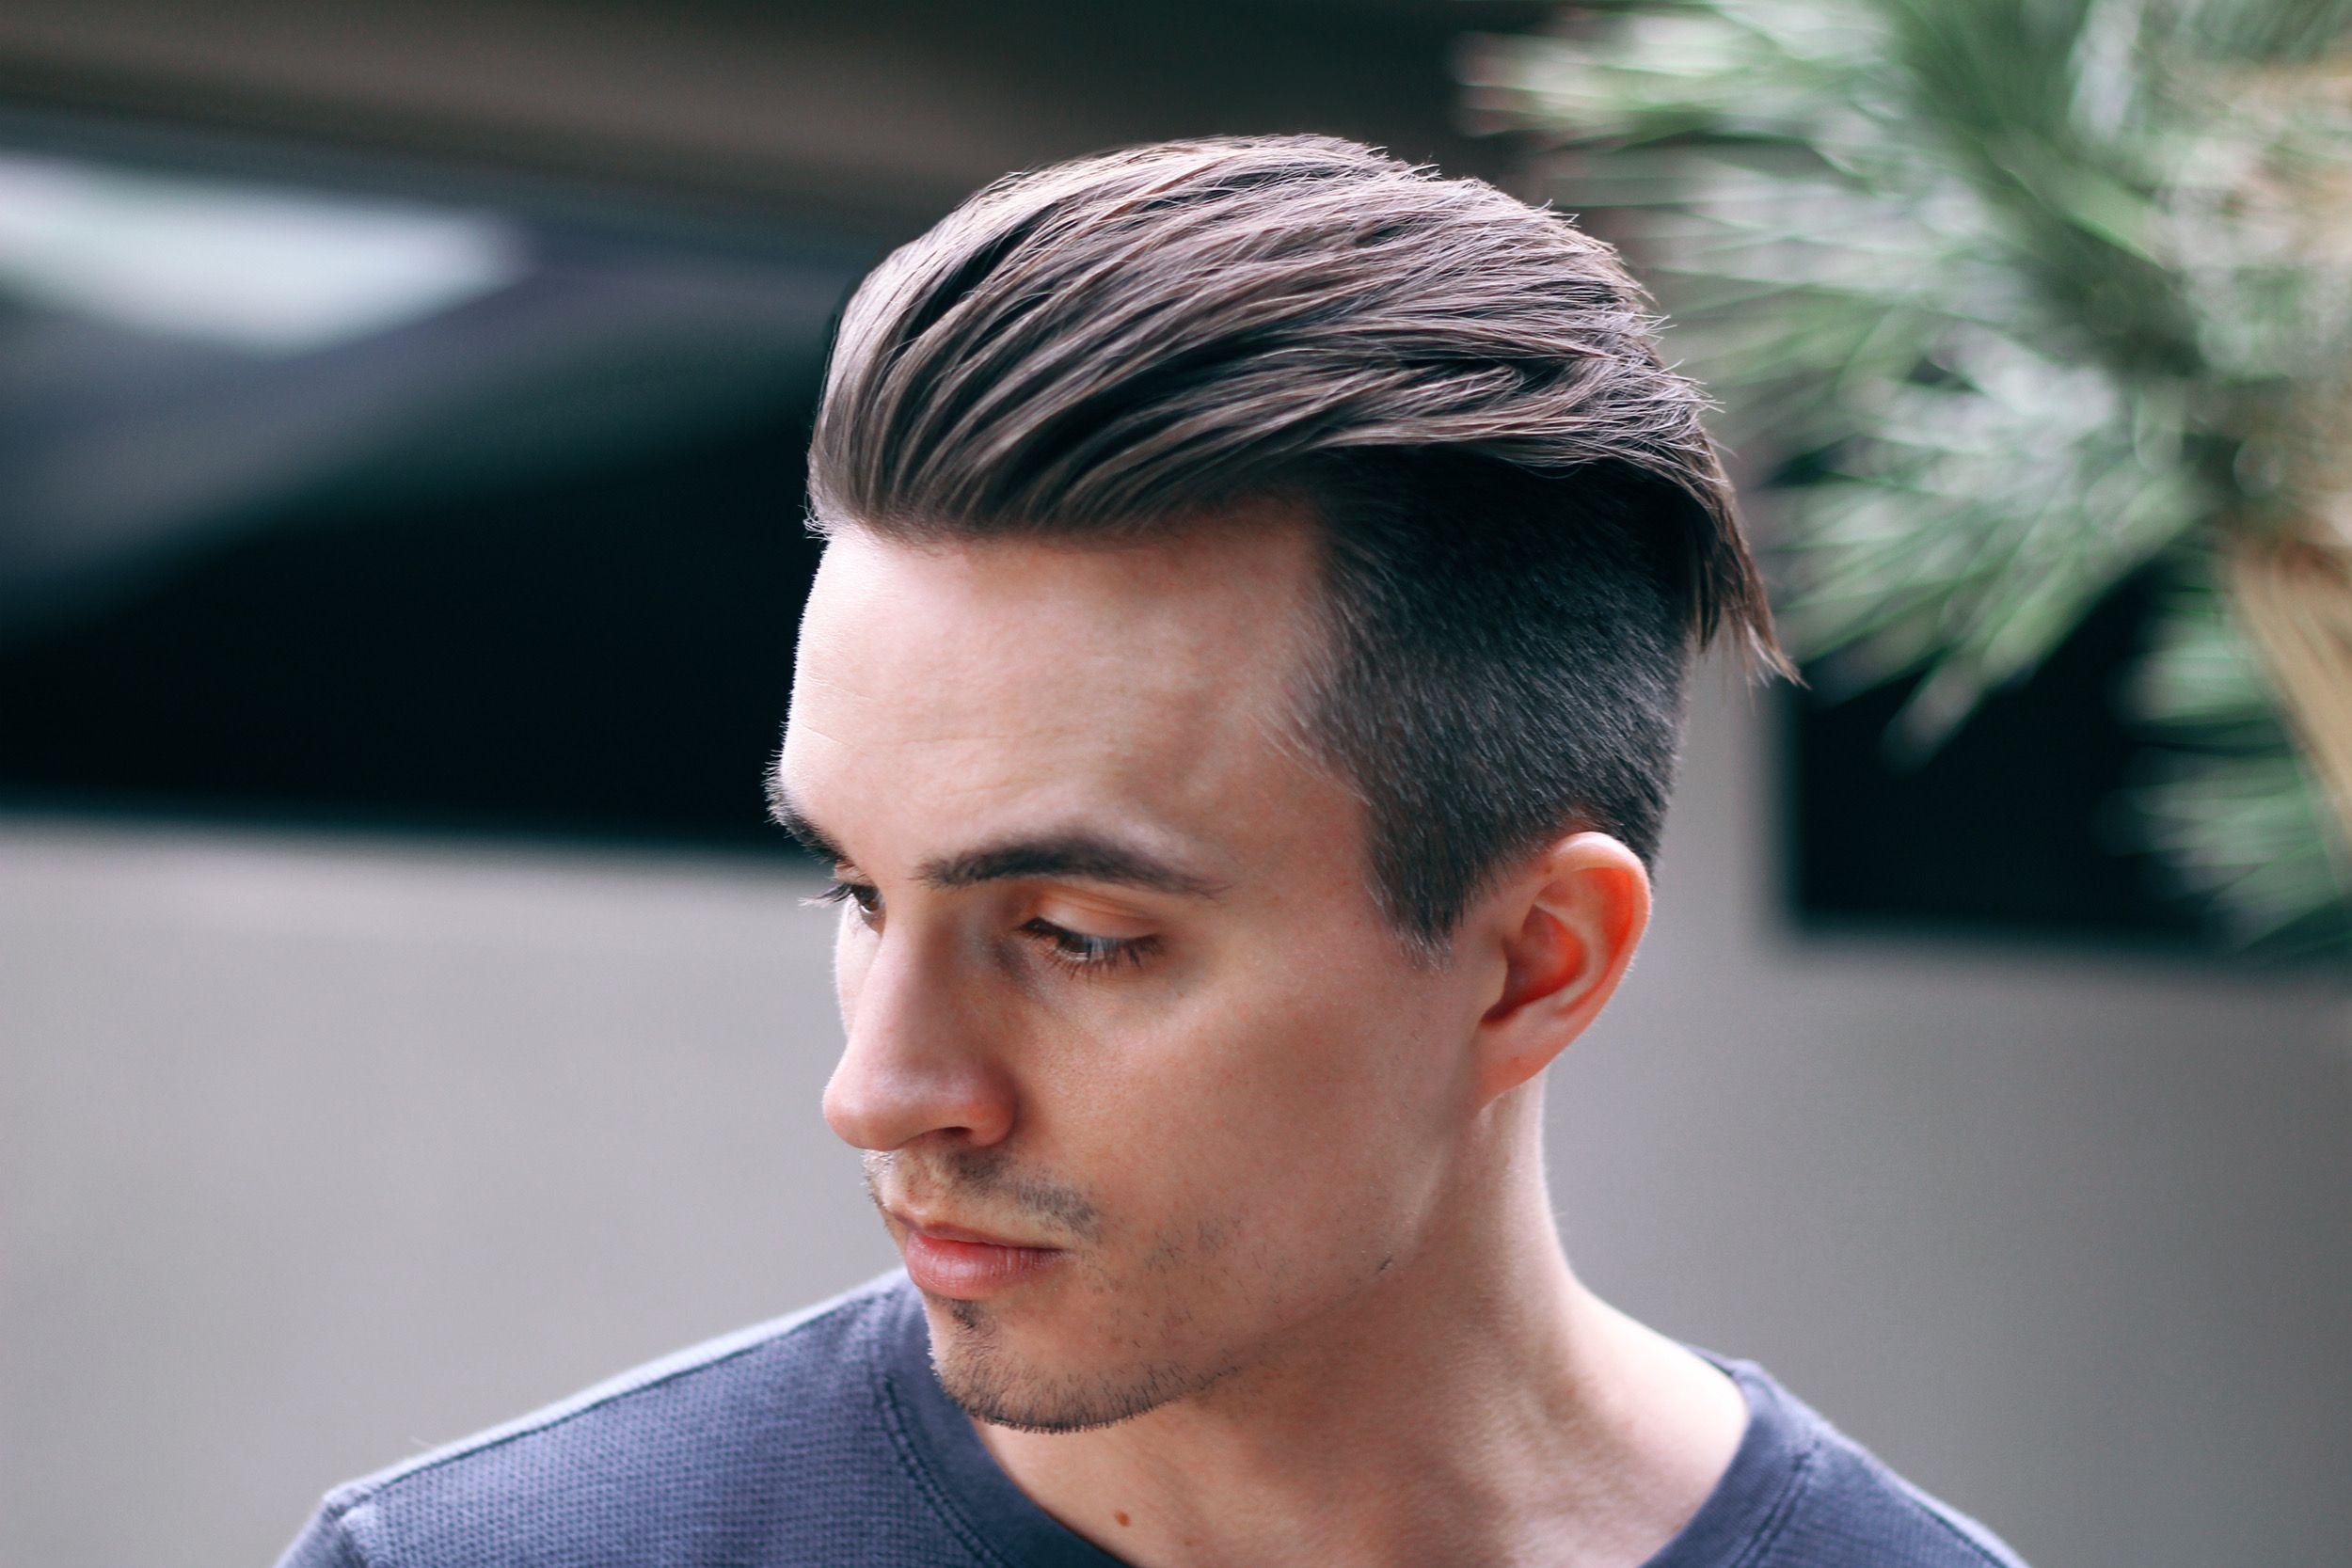 Dre Drexler Undercut Hairstyle For Men Check Out Dre S Hair Fashion Videos At Www Youtube Com Undercut Hairstyles Mens Hairstyles Undercut Mens Hairstyles